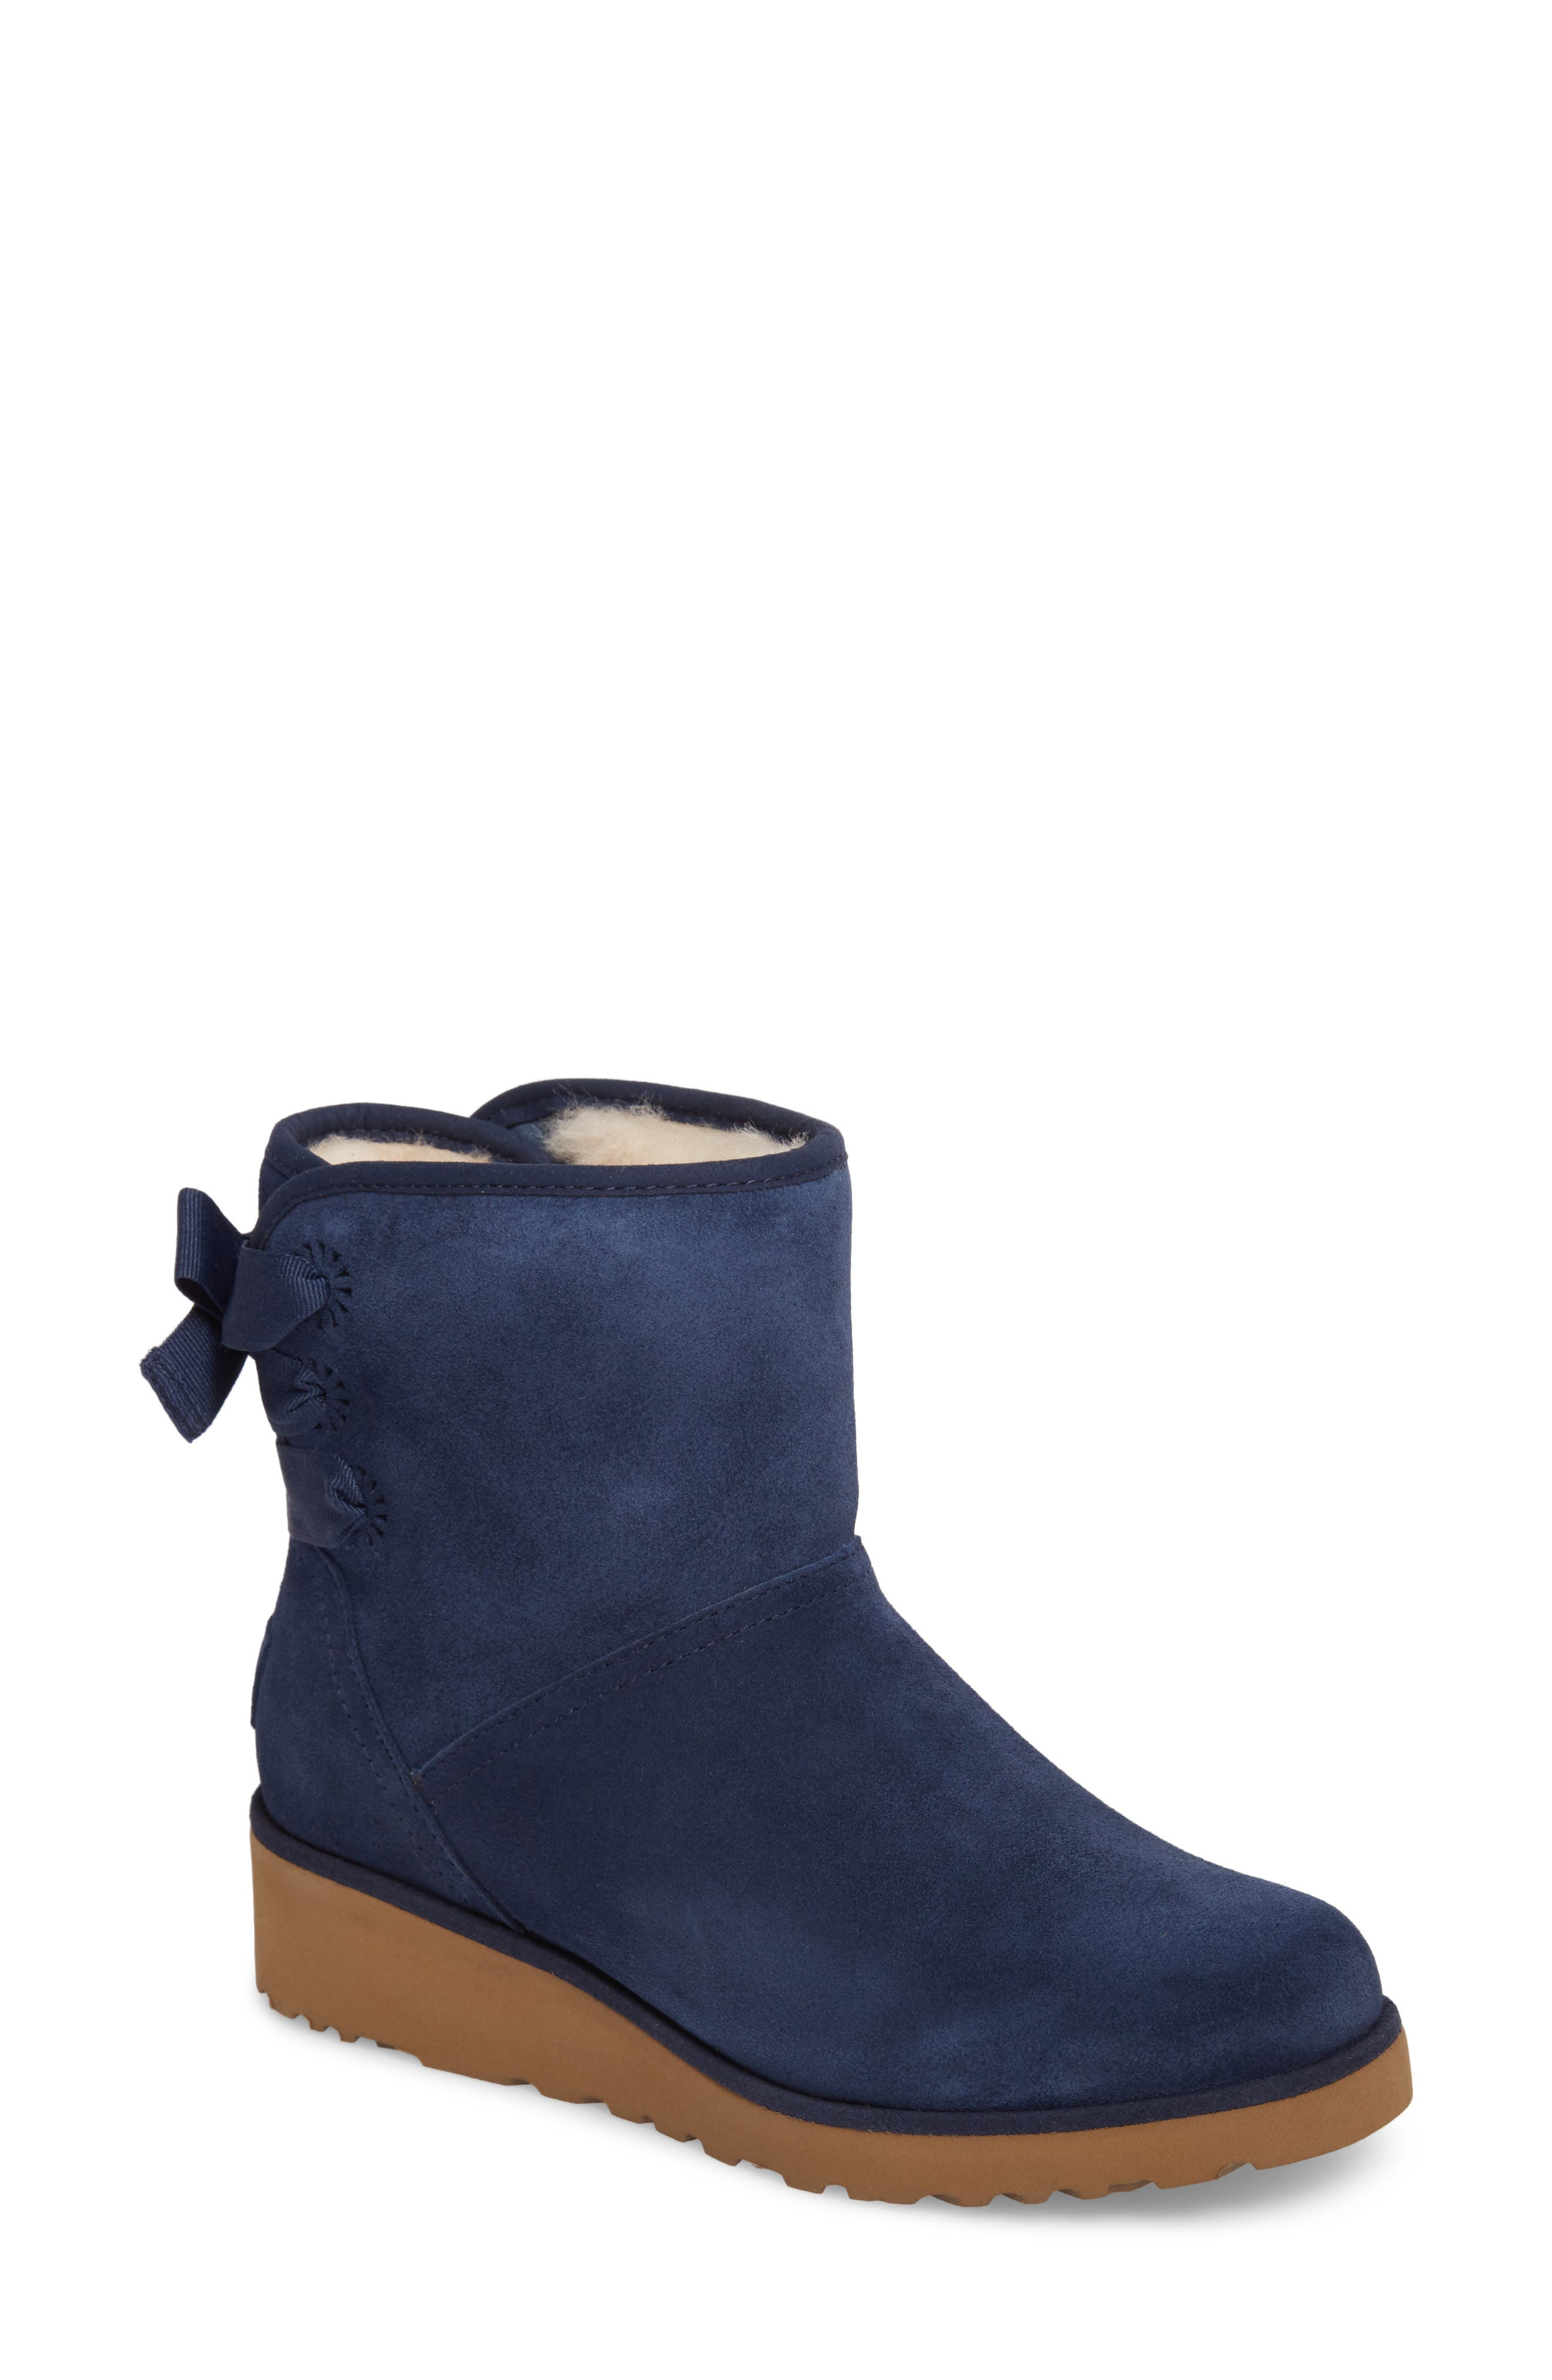 Drew Sunshine Perforated Tie Back Boot,                             Main thumbnail 3, color,